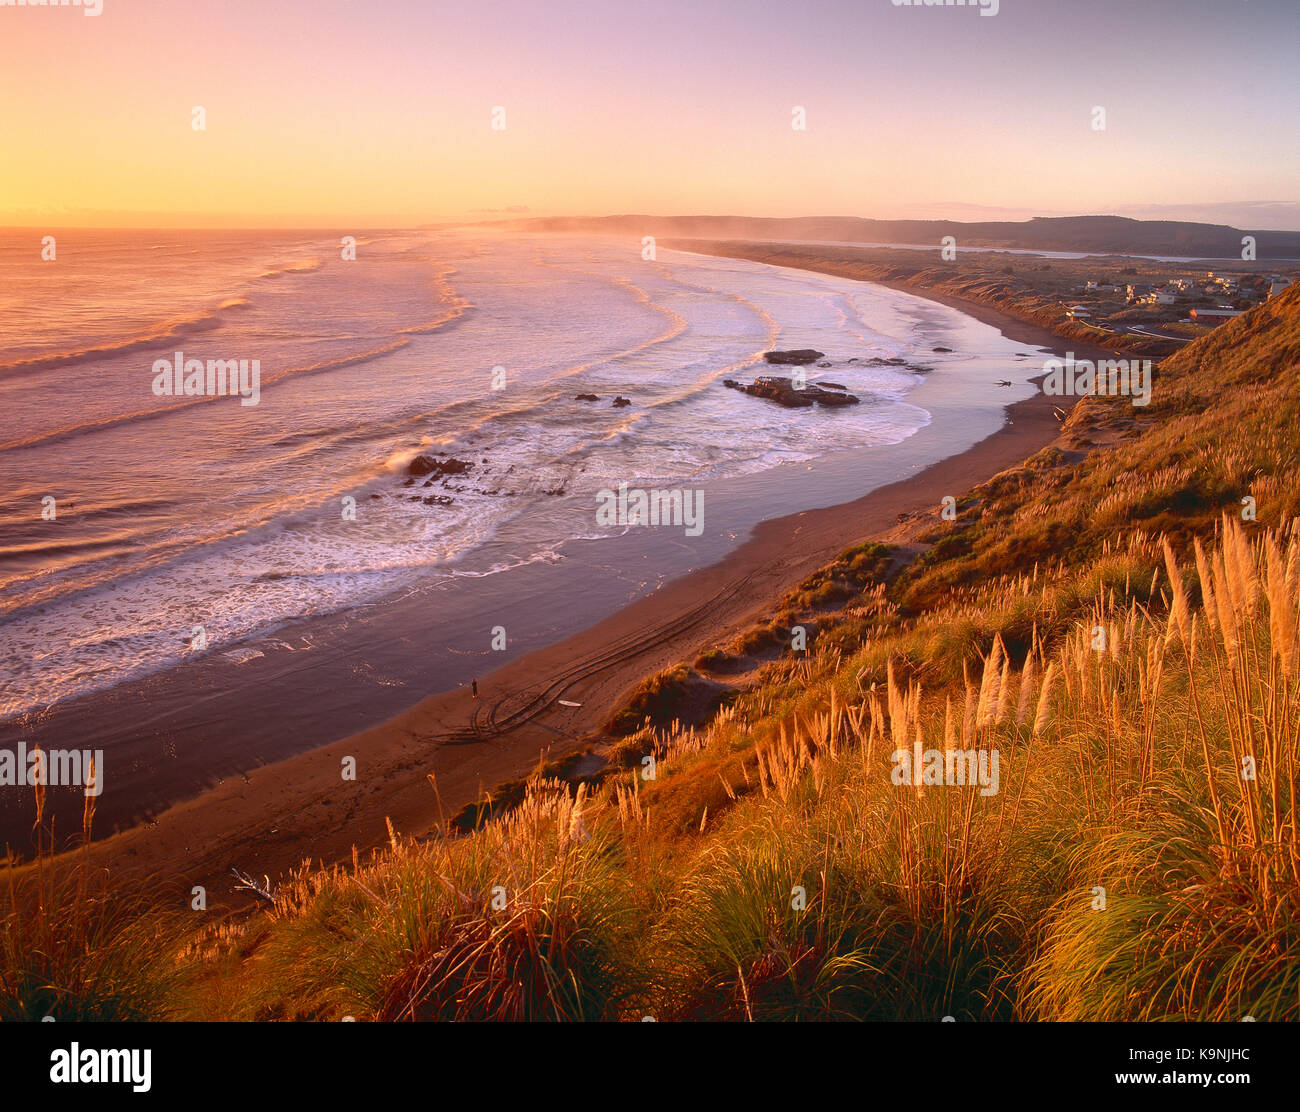 New Zealand. North Island, Port Waikato coast at sunset. Stock Photo